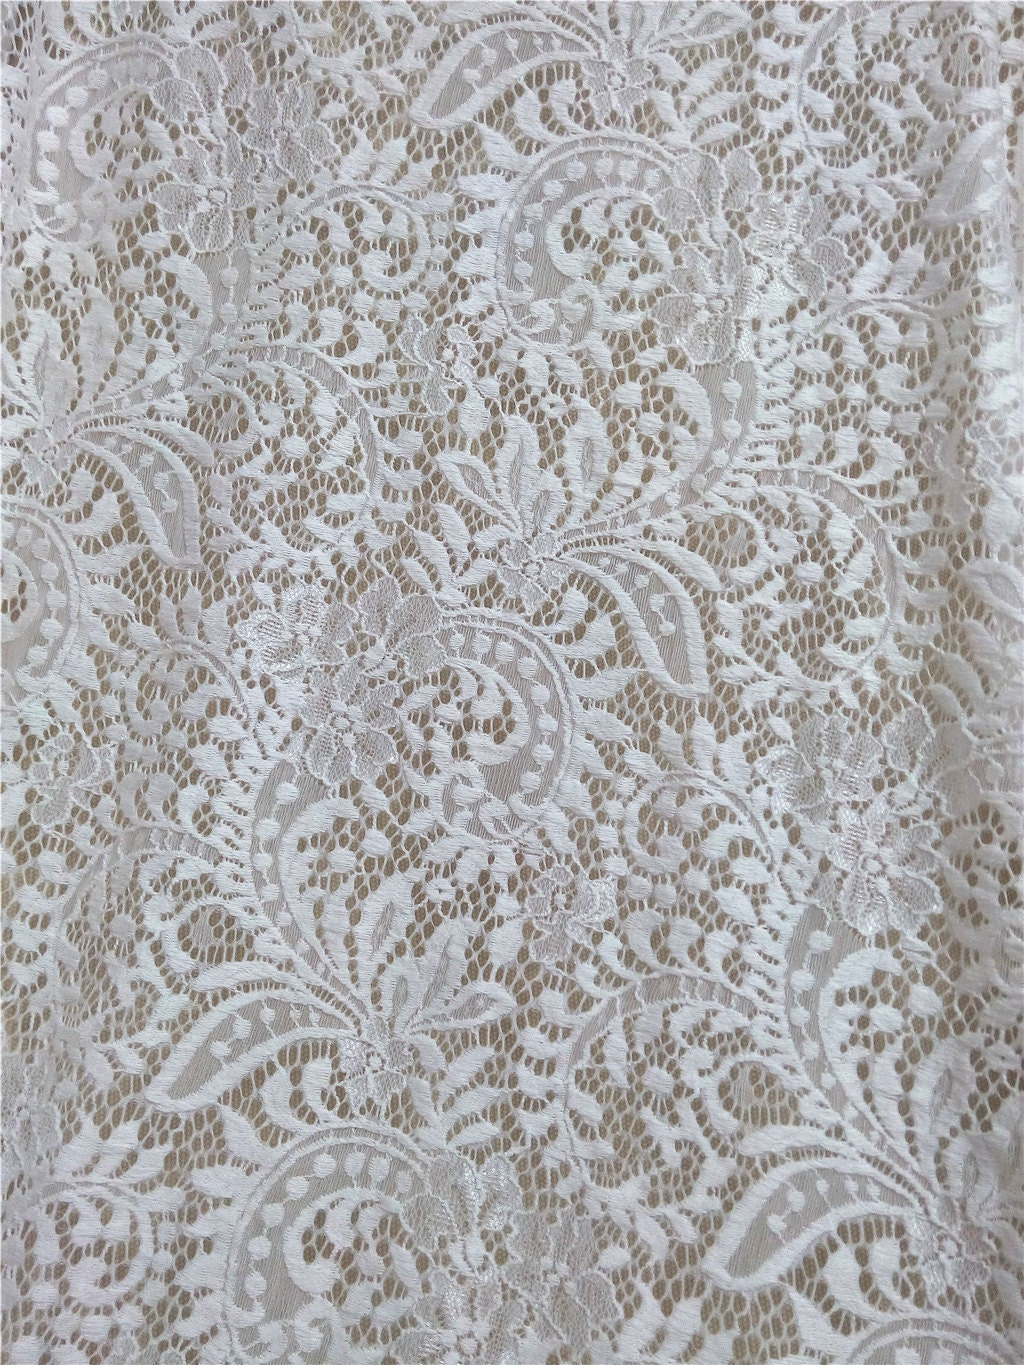 Wedding Lace Fabric Stretch Lace Floral Lace Fabric Lace